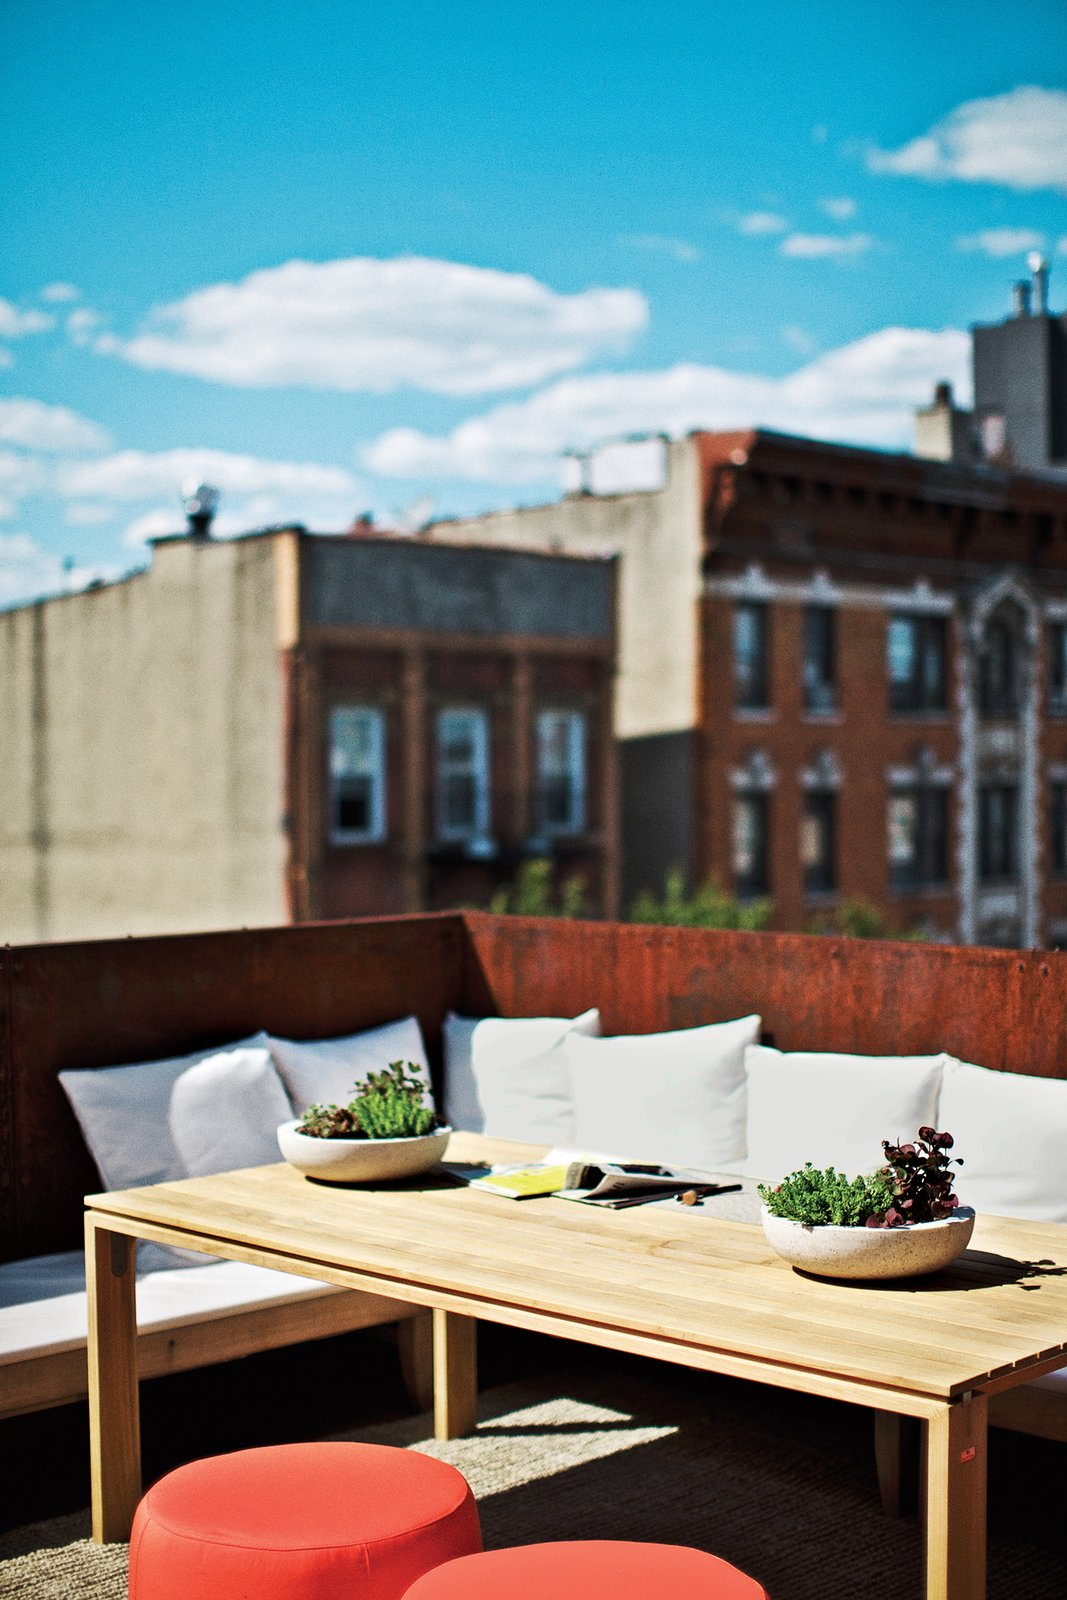 #outdoor #rooftop #table #dining #Summer #chair #Brooklyn #tabletop  Photo by Paul Barbera  Outdoor by Dwell